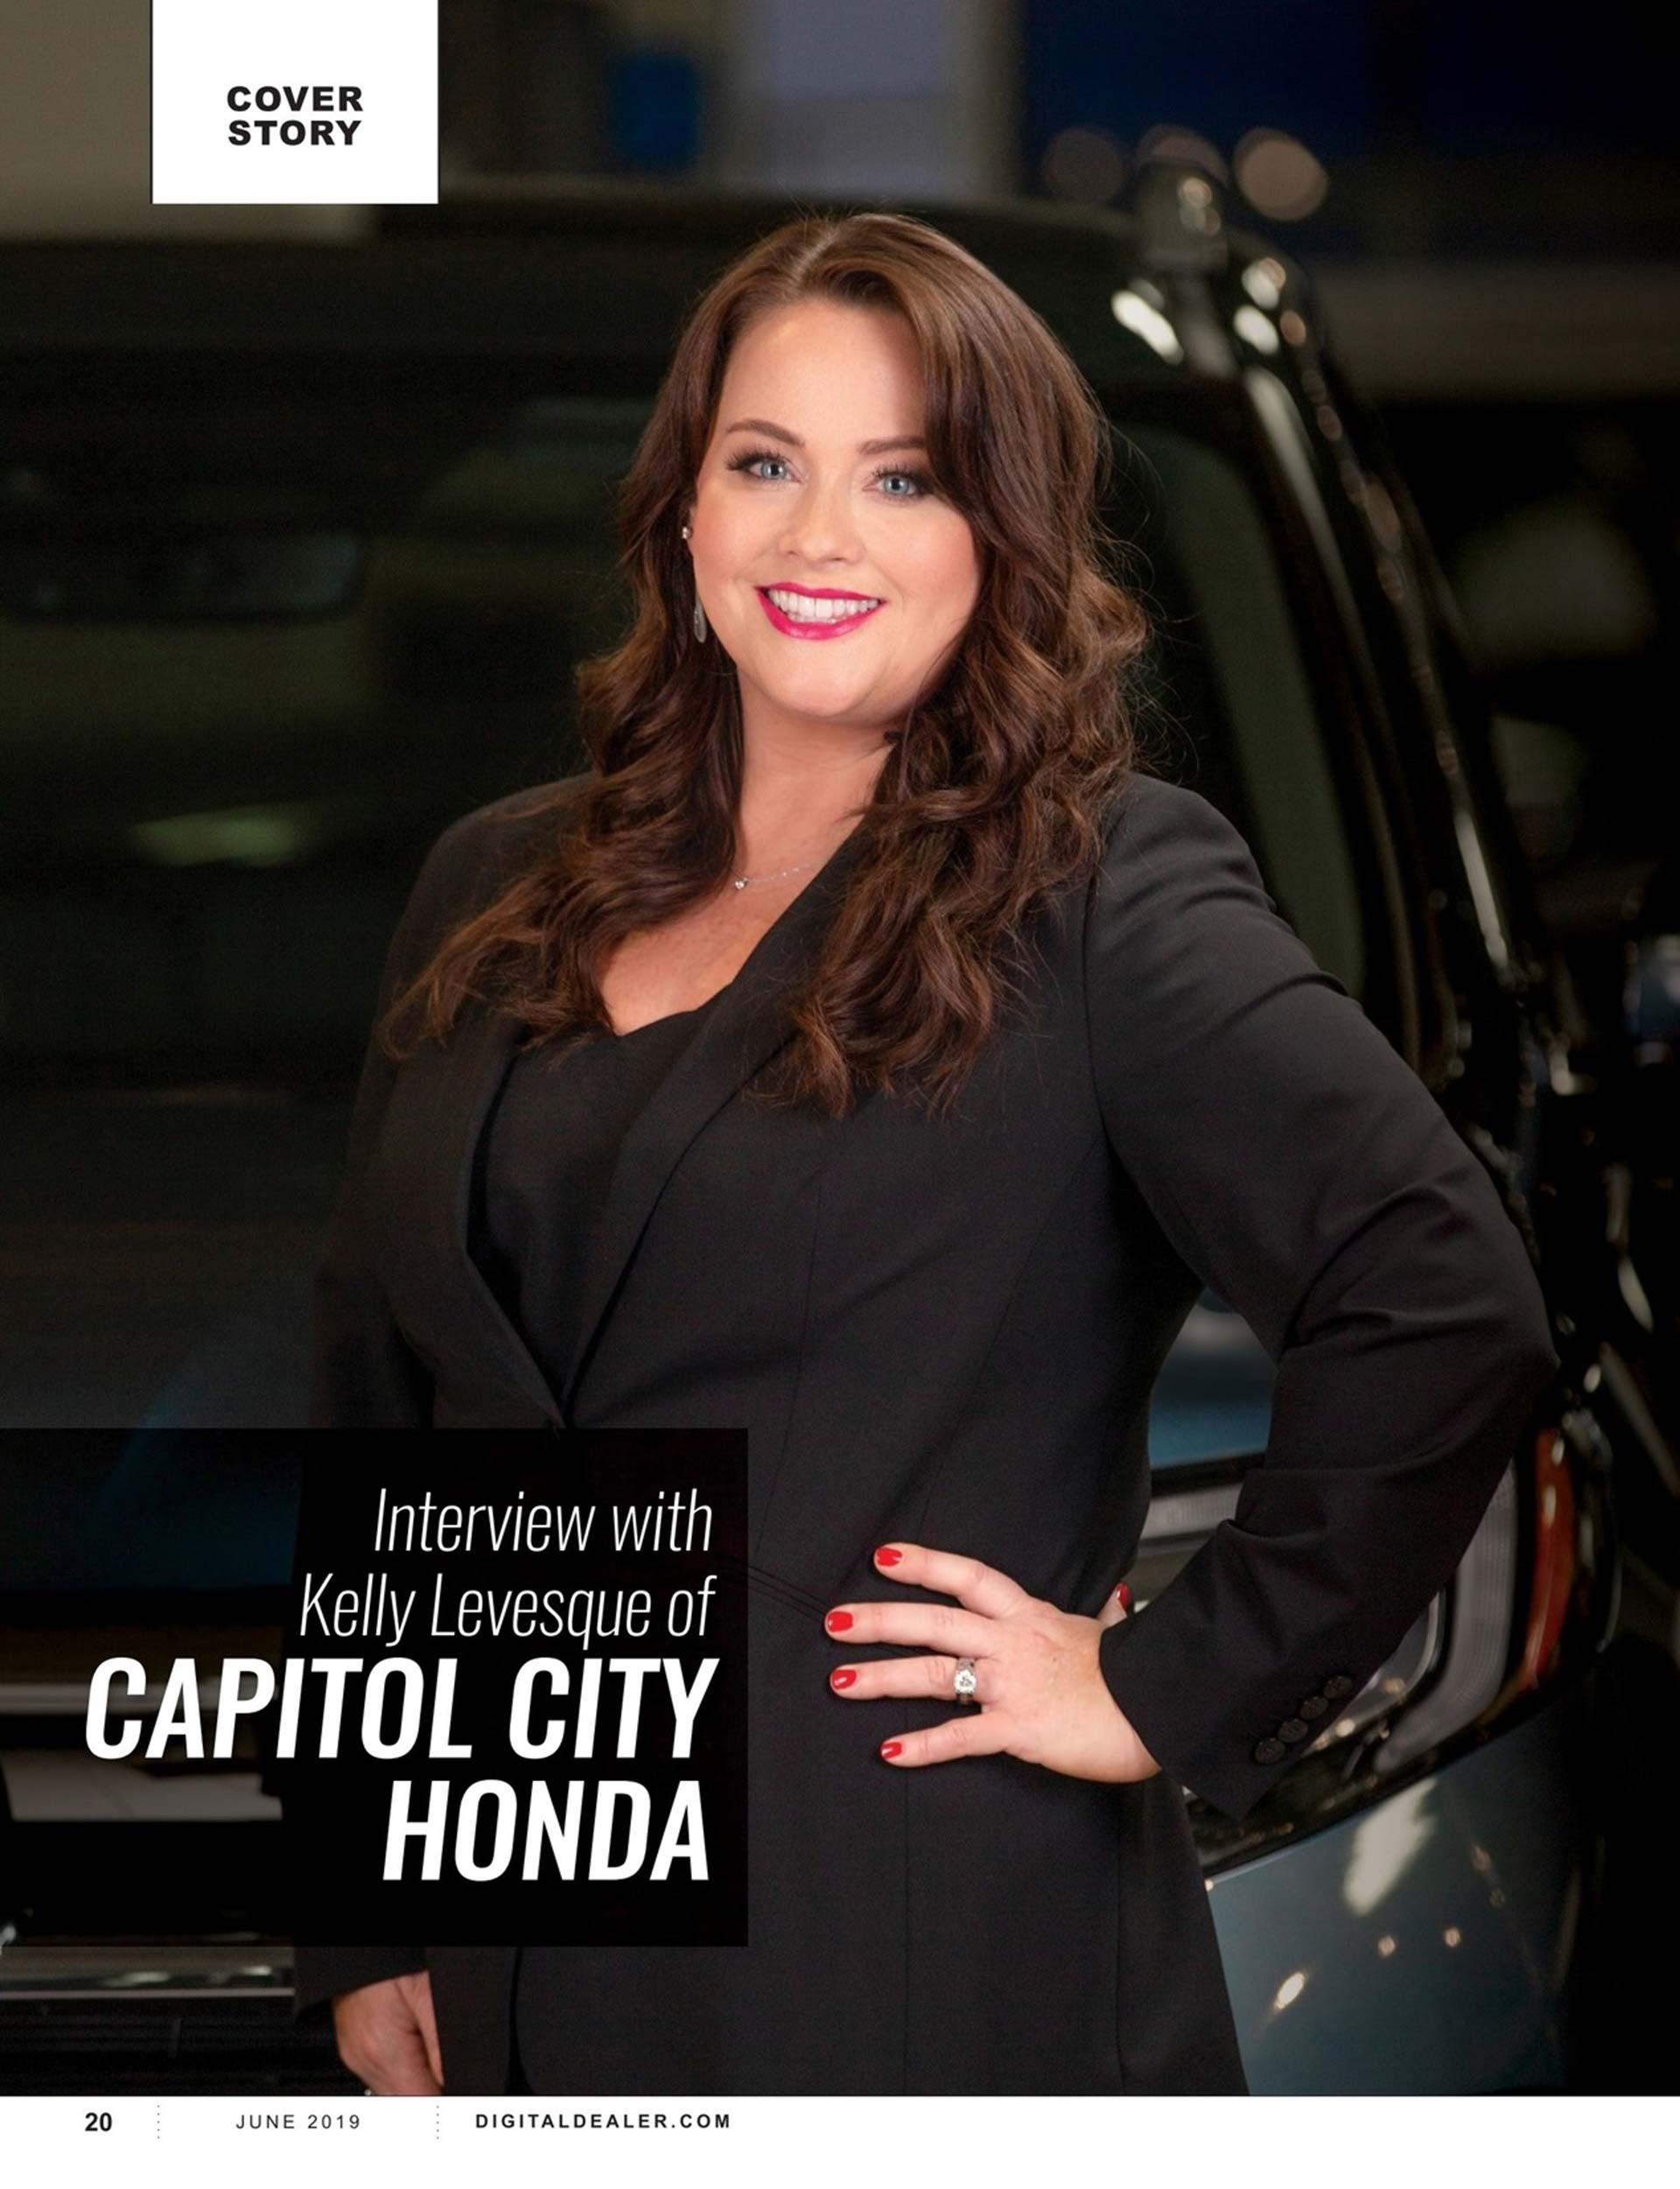 Capitol City Honda in Dealer Magazine 2